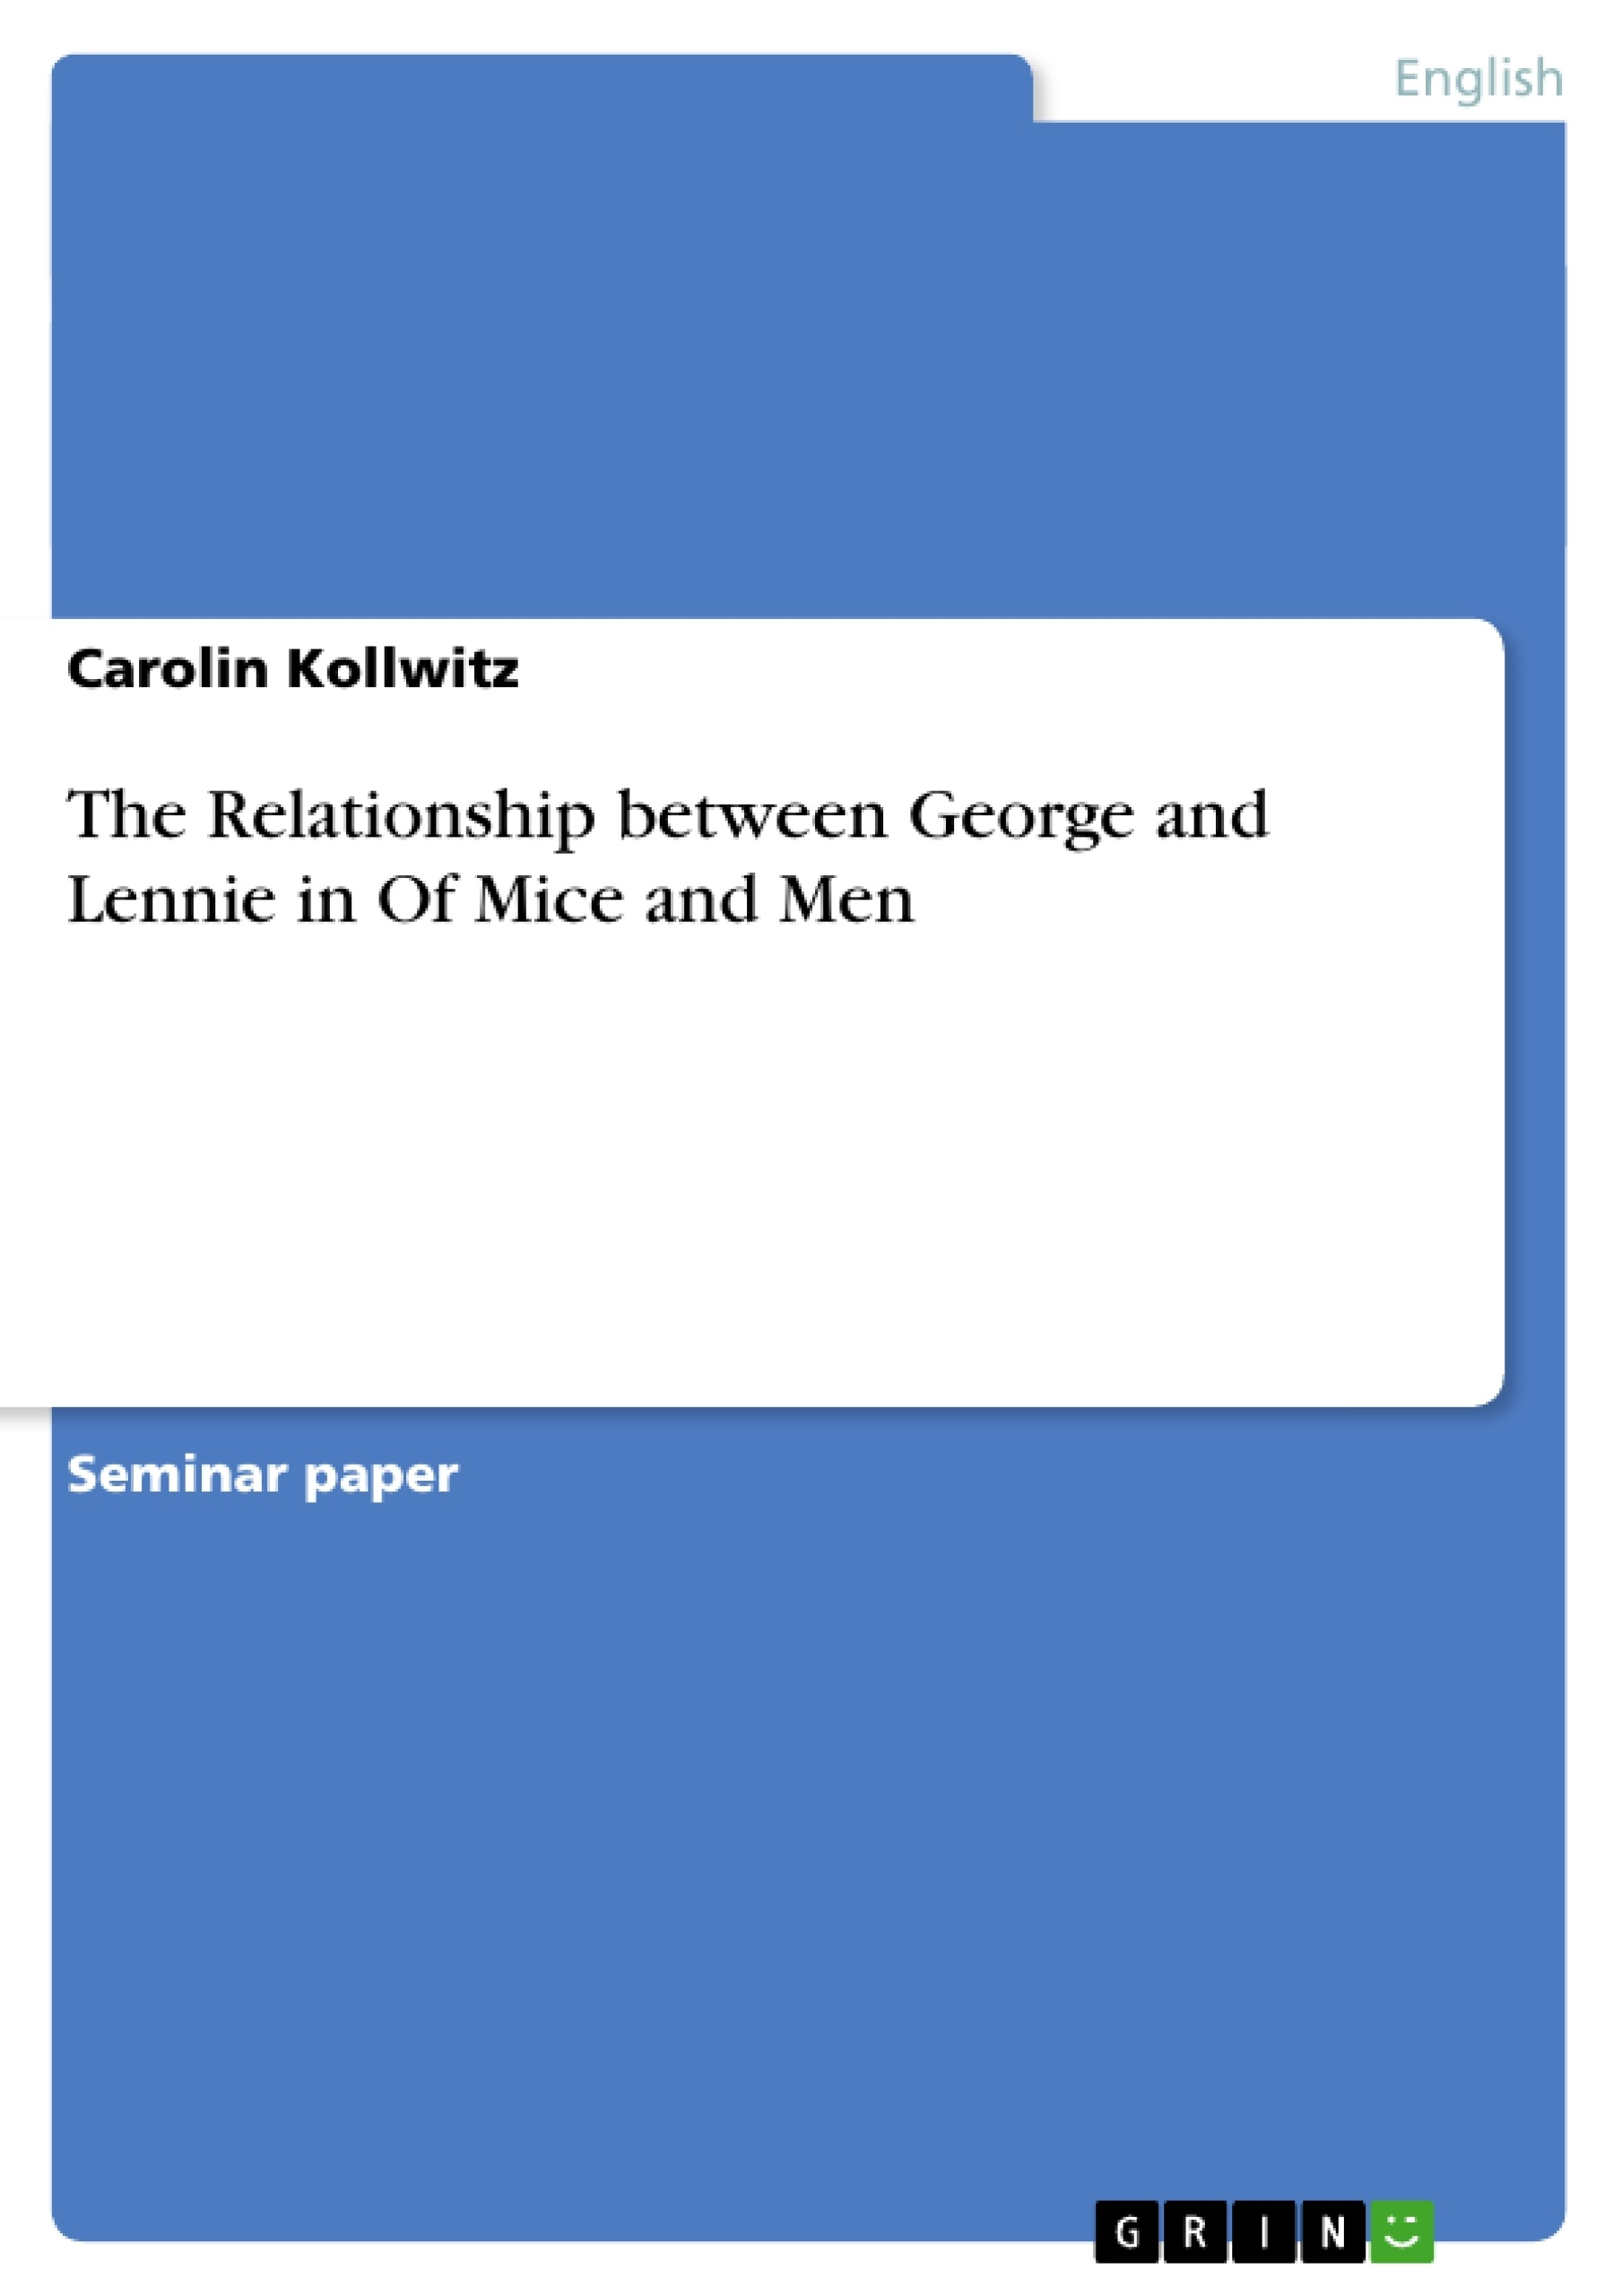 the relationship between george and lennie in of mice and men  upload your own papers earn money and win an iphone x